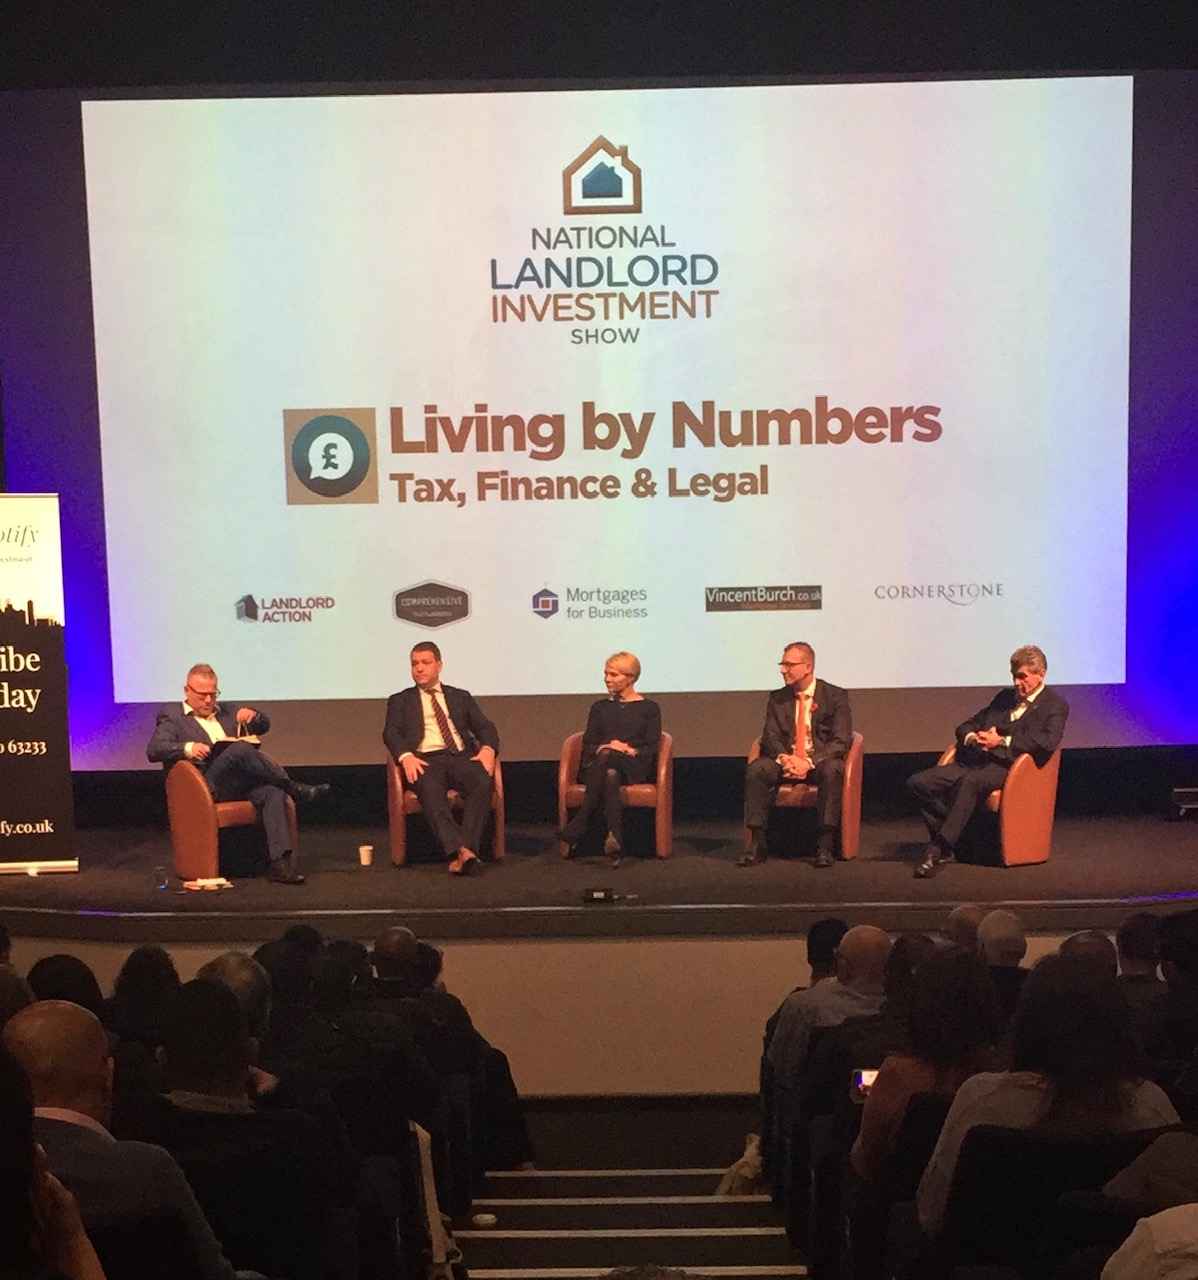 Landlord Investment Show – 'Living by numbers' panel debate: the key takeaways - https://roomslocal.co.uk/blog/landlord-investment-show-living-by-numbers-panel-debate-the-key-takeaways #investment #show #living #numbers #panel